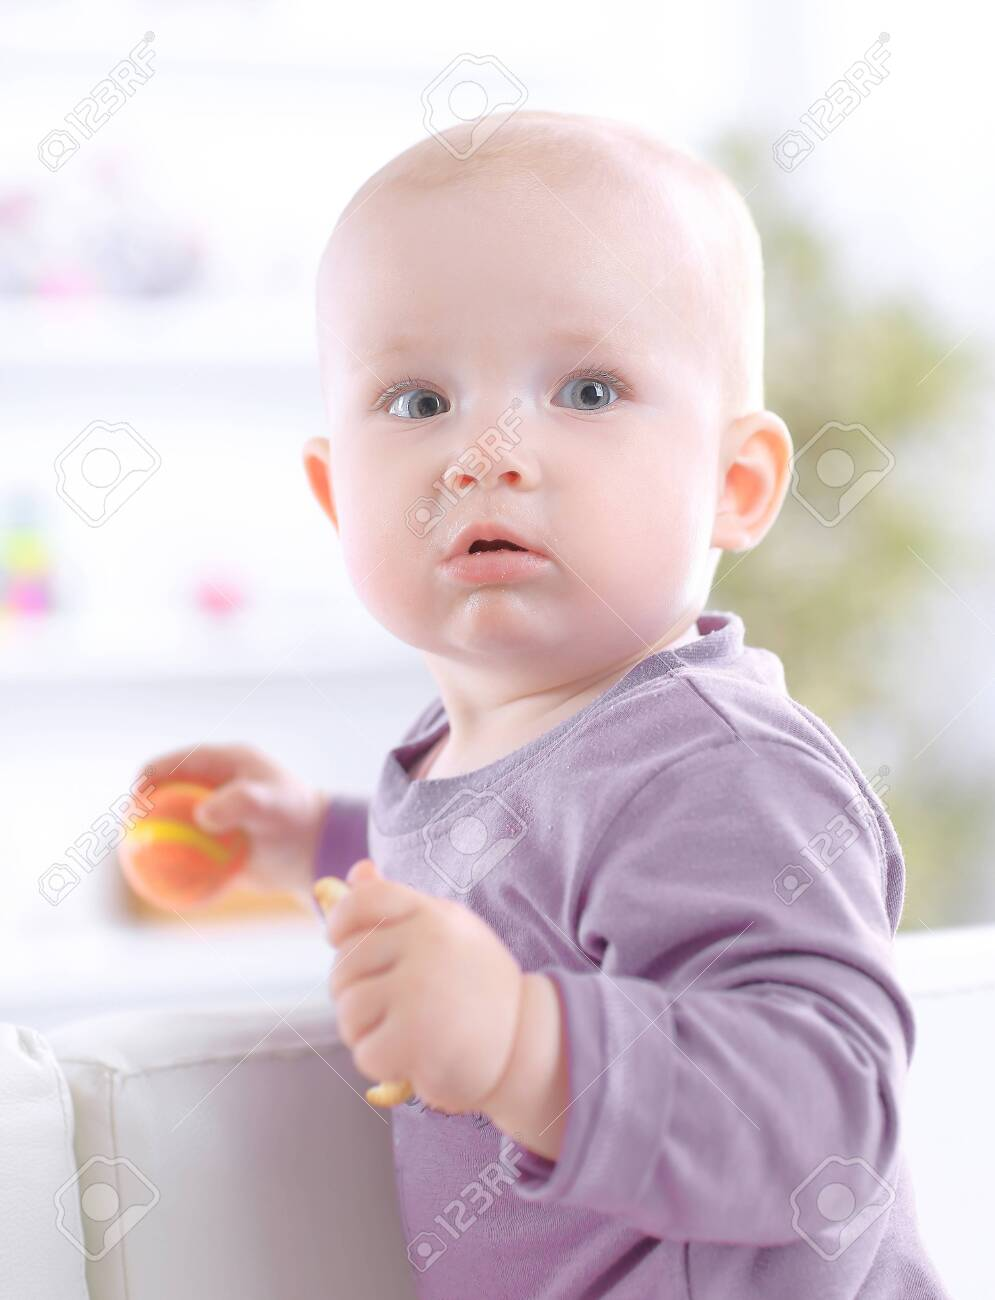 close up.cute baby eating a cookie while sitting on the couch - 123600968